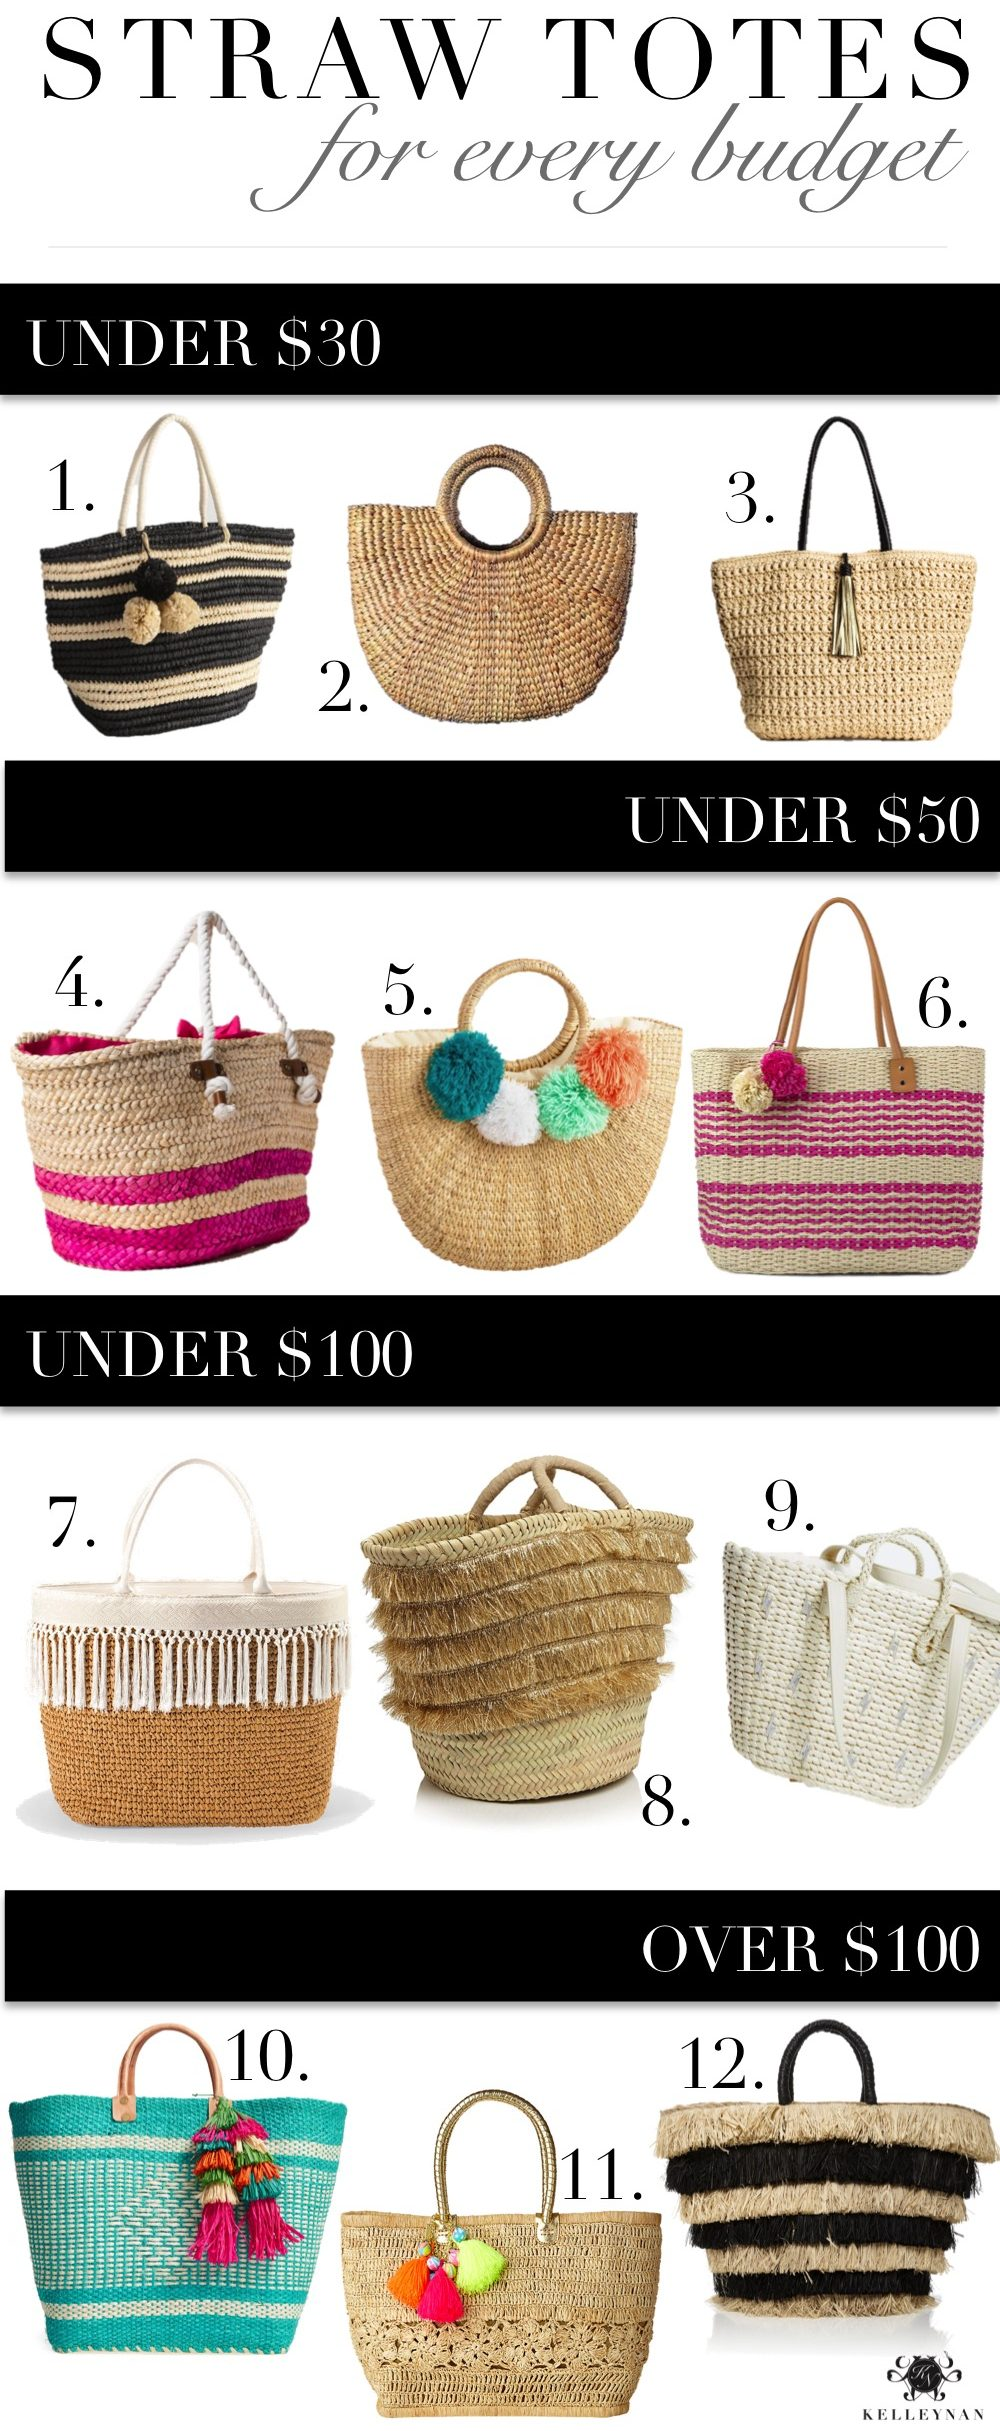 Straw Bags At Every Price